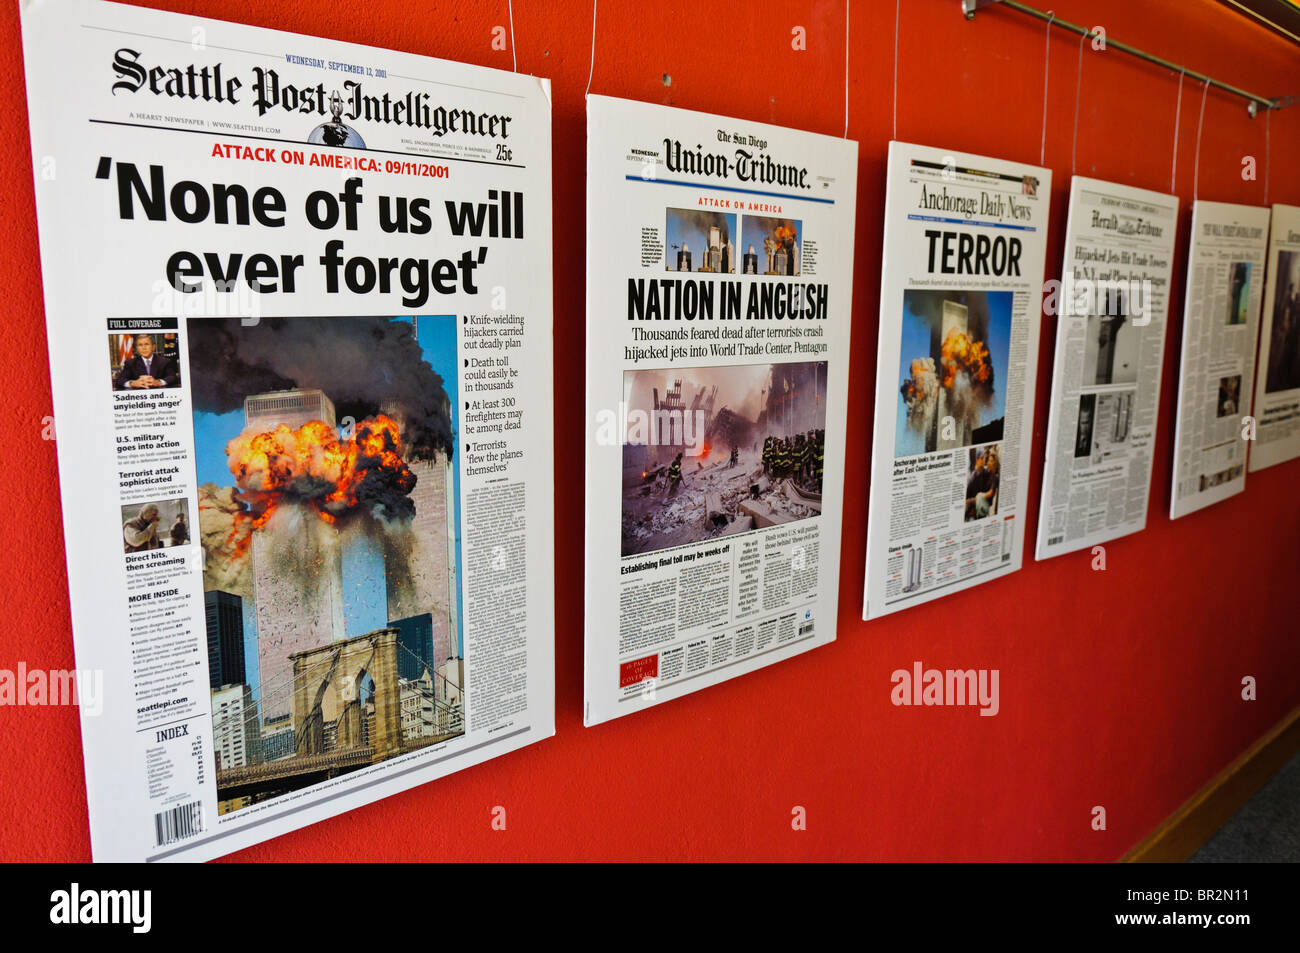 Newspaper front covers in an exhibition commemorating 9/11 2001 Stock Photo